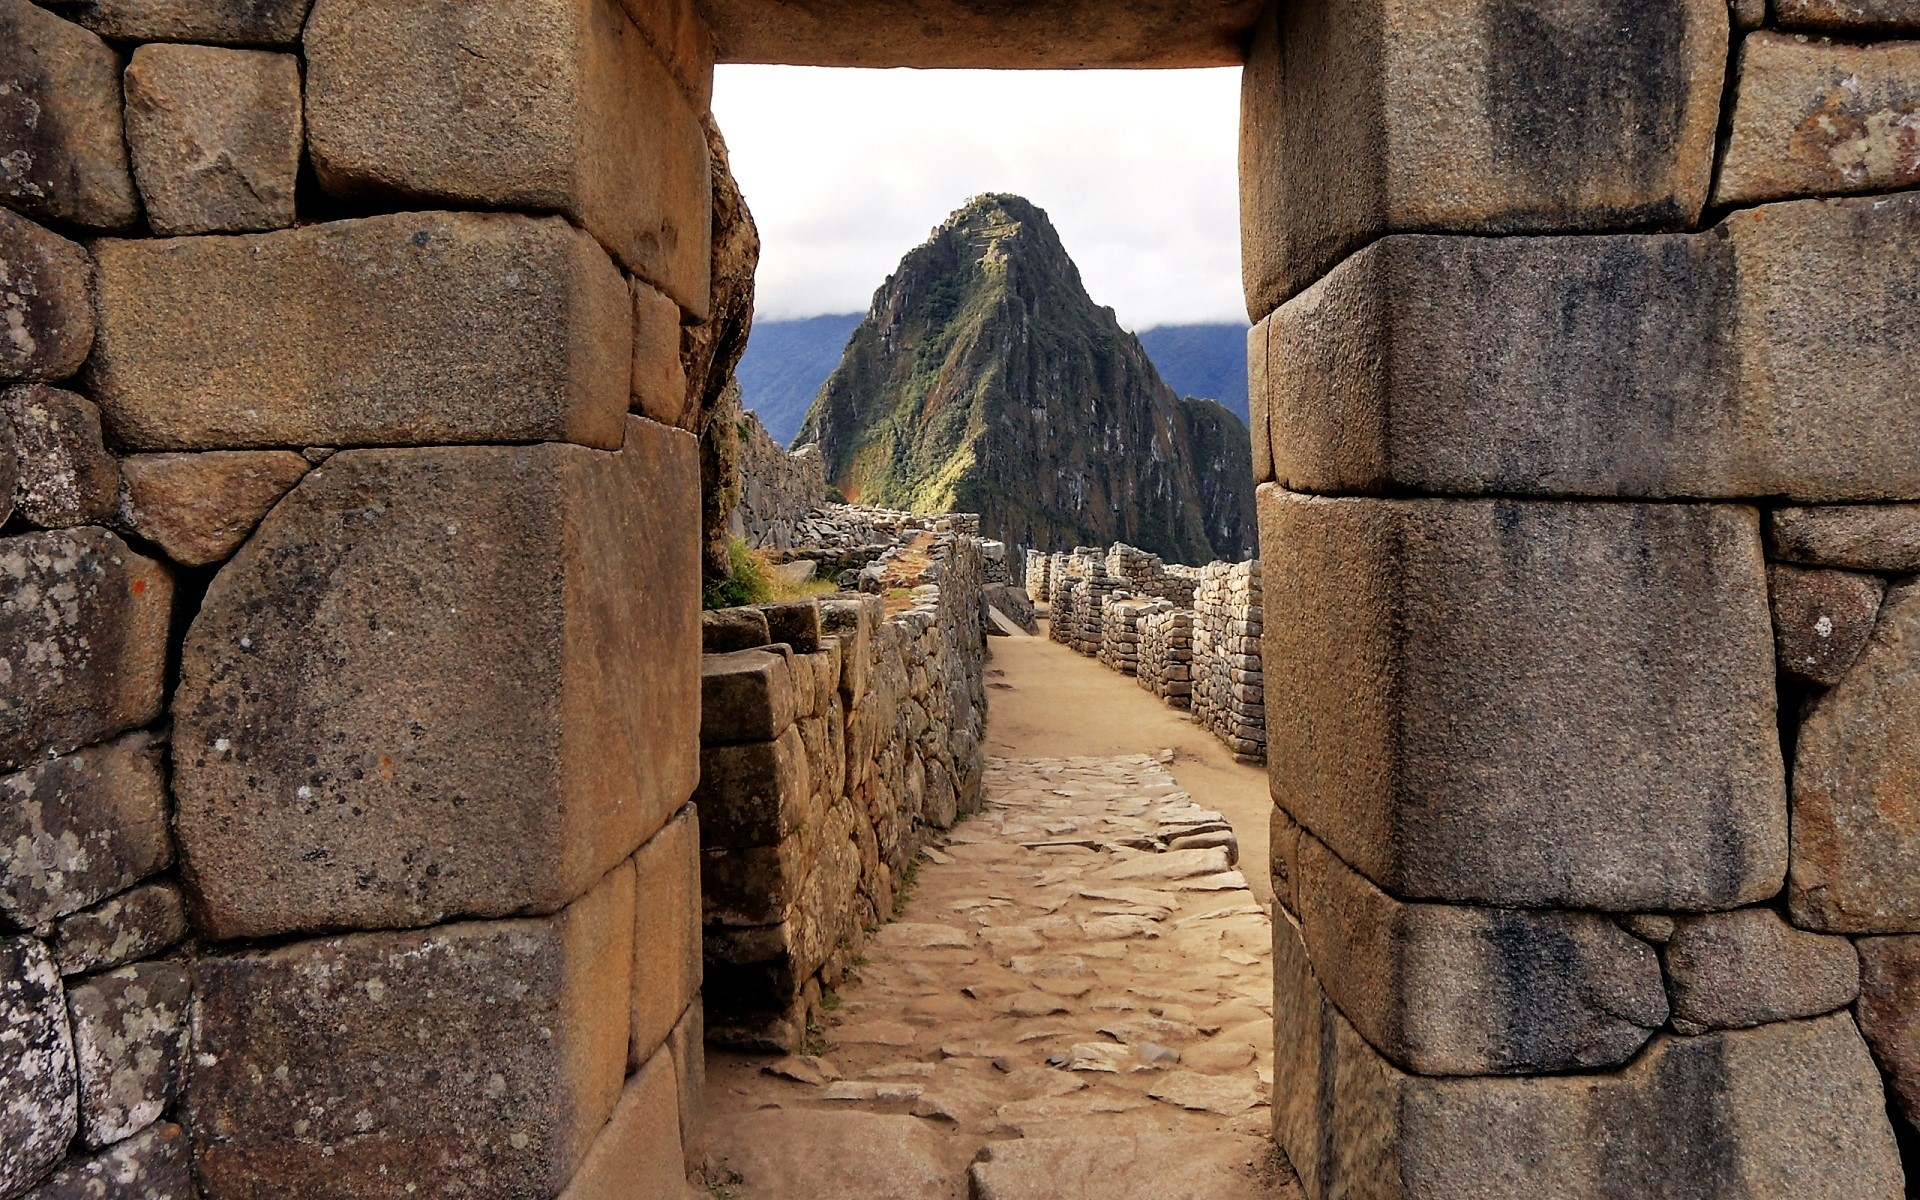 General 1920x1200 nature landscape architecture building old building ancient Machu Picchu mountains Peru wall stones World Heritage Site ruin ruins history South America